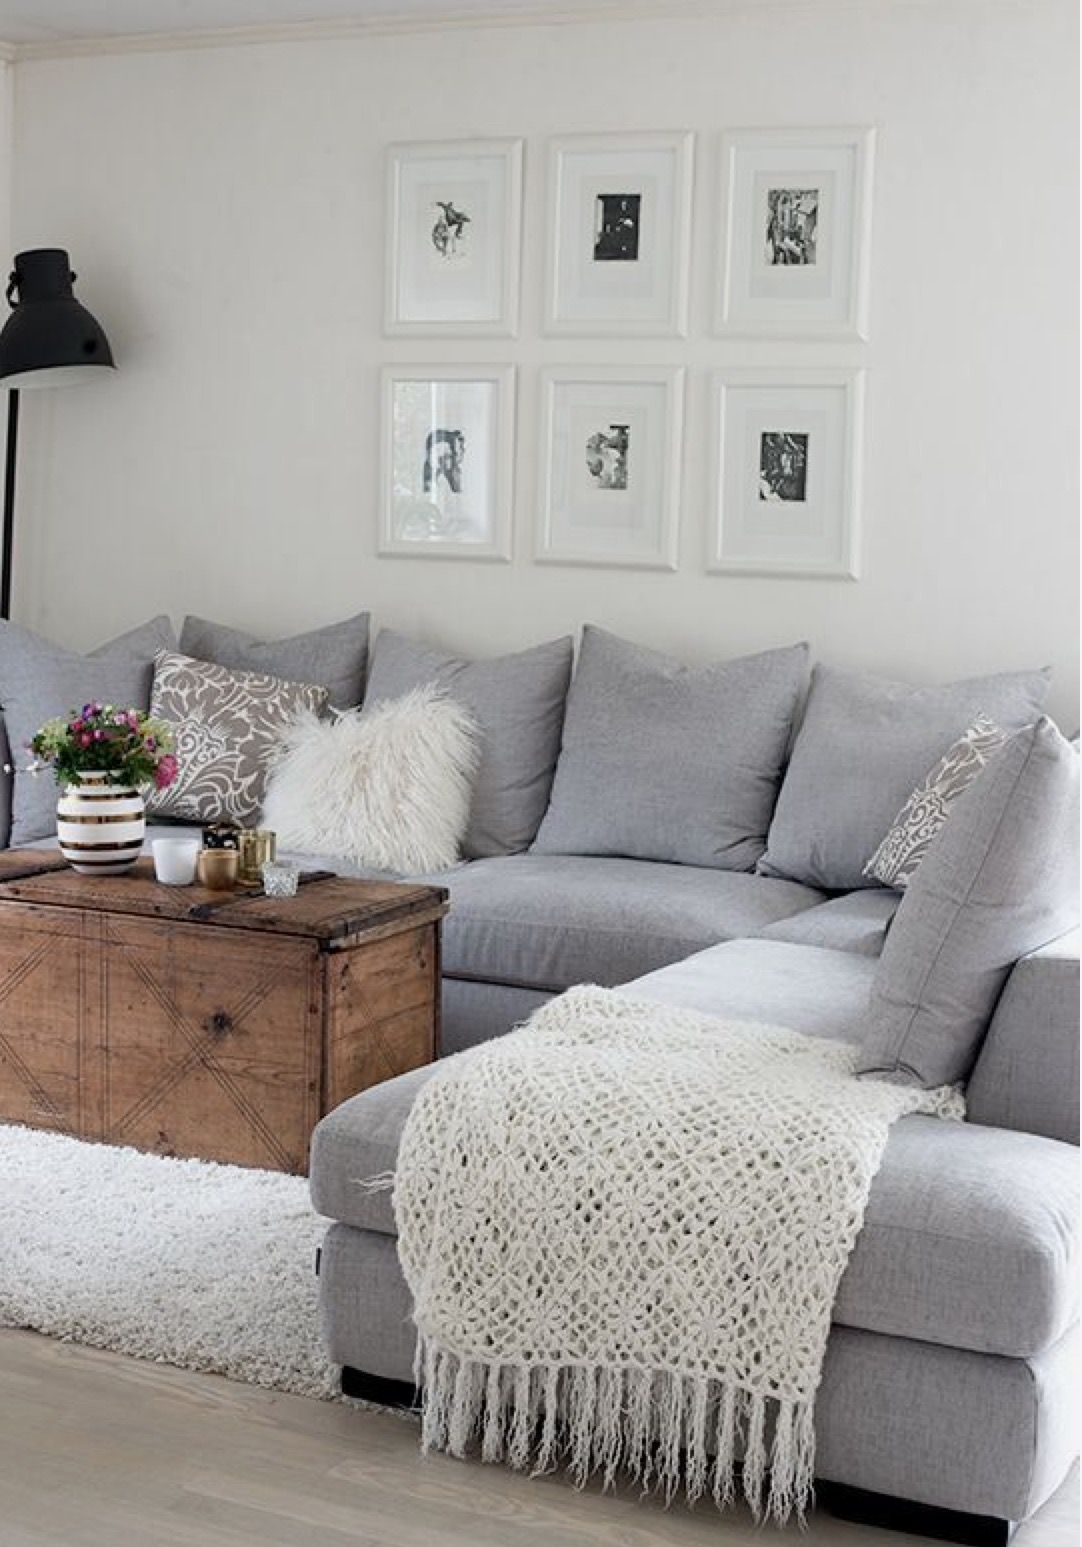 First apartment   Apartment   Pinterest   Apartments, Living rooms ...